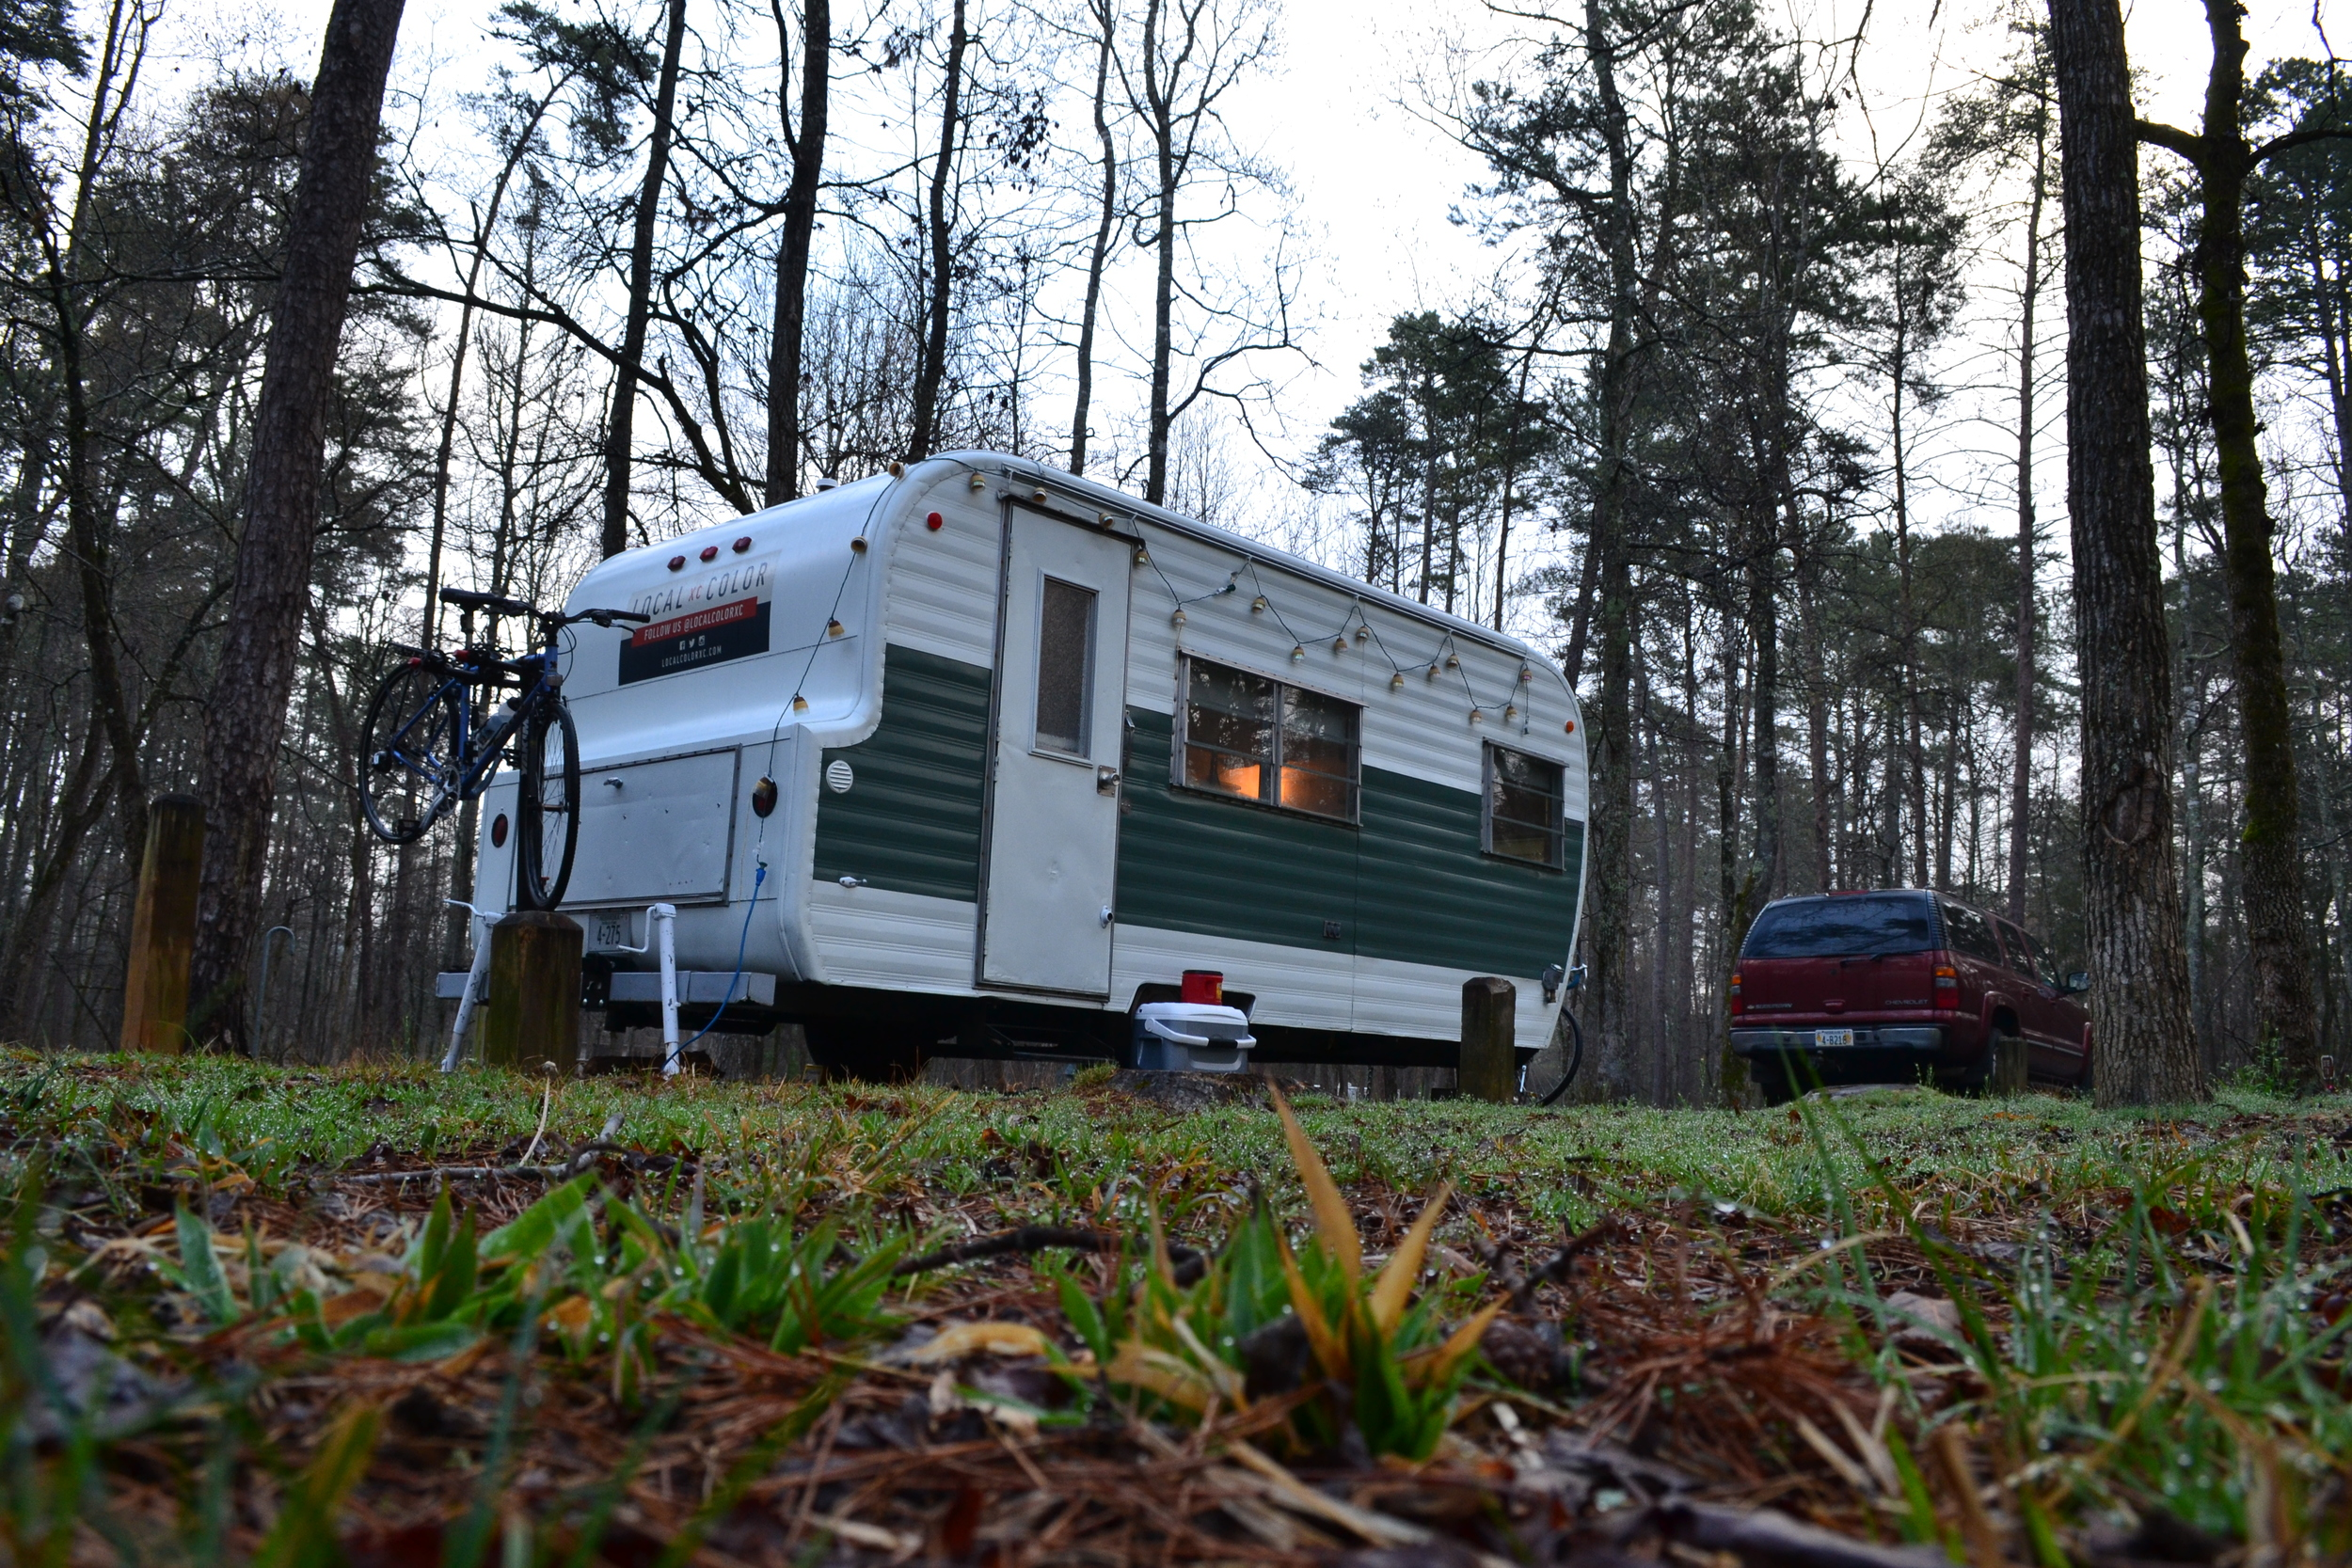 The camp sites are well maintained at Lake Powhatan.